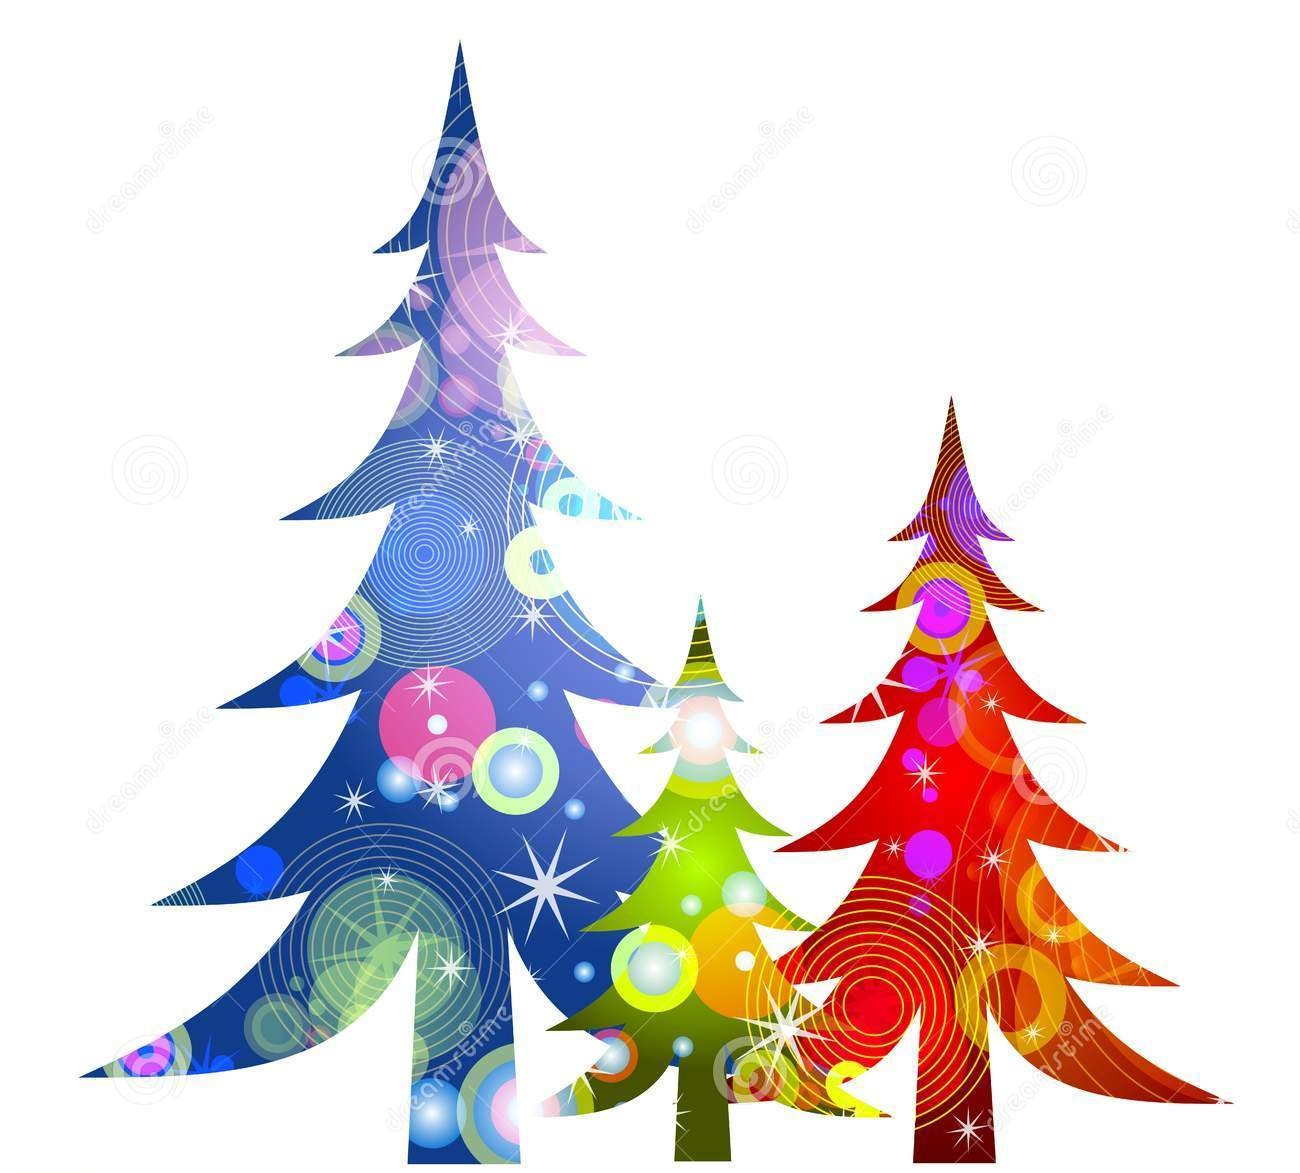 Chirstmas thank you clipart jpg transparent stock Christmas Thank You Clipart | Clipart Panda - Free Clipart Images jpg transparent stock